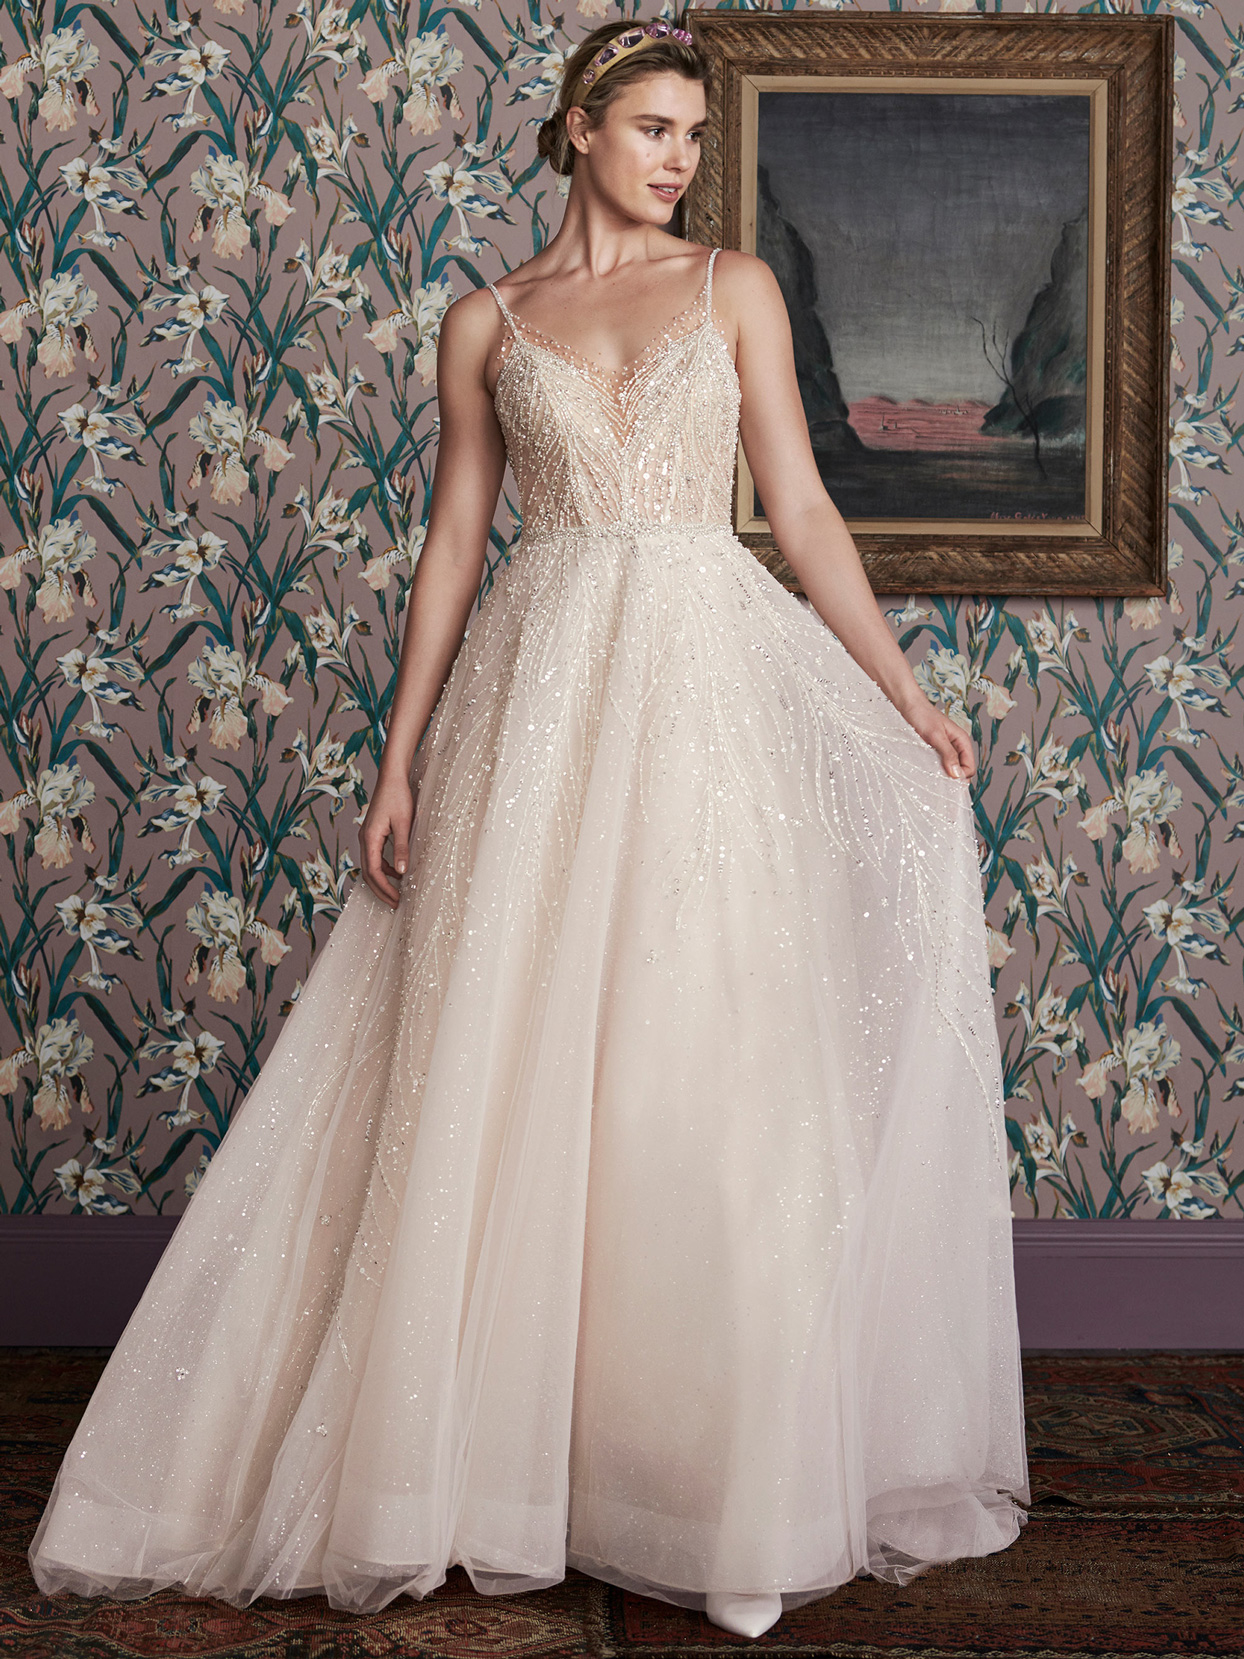 justin alexander beaded thin strap a-line wedding dress spring 2021